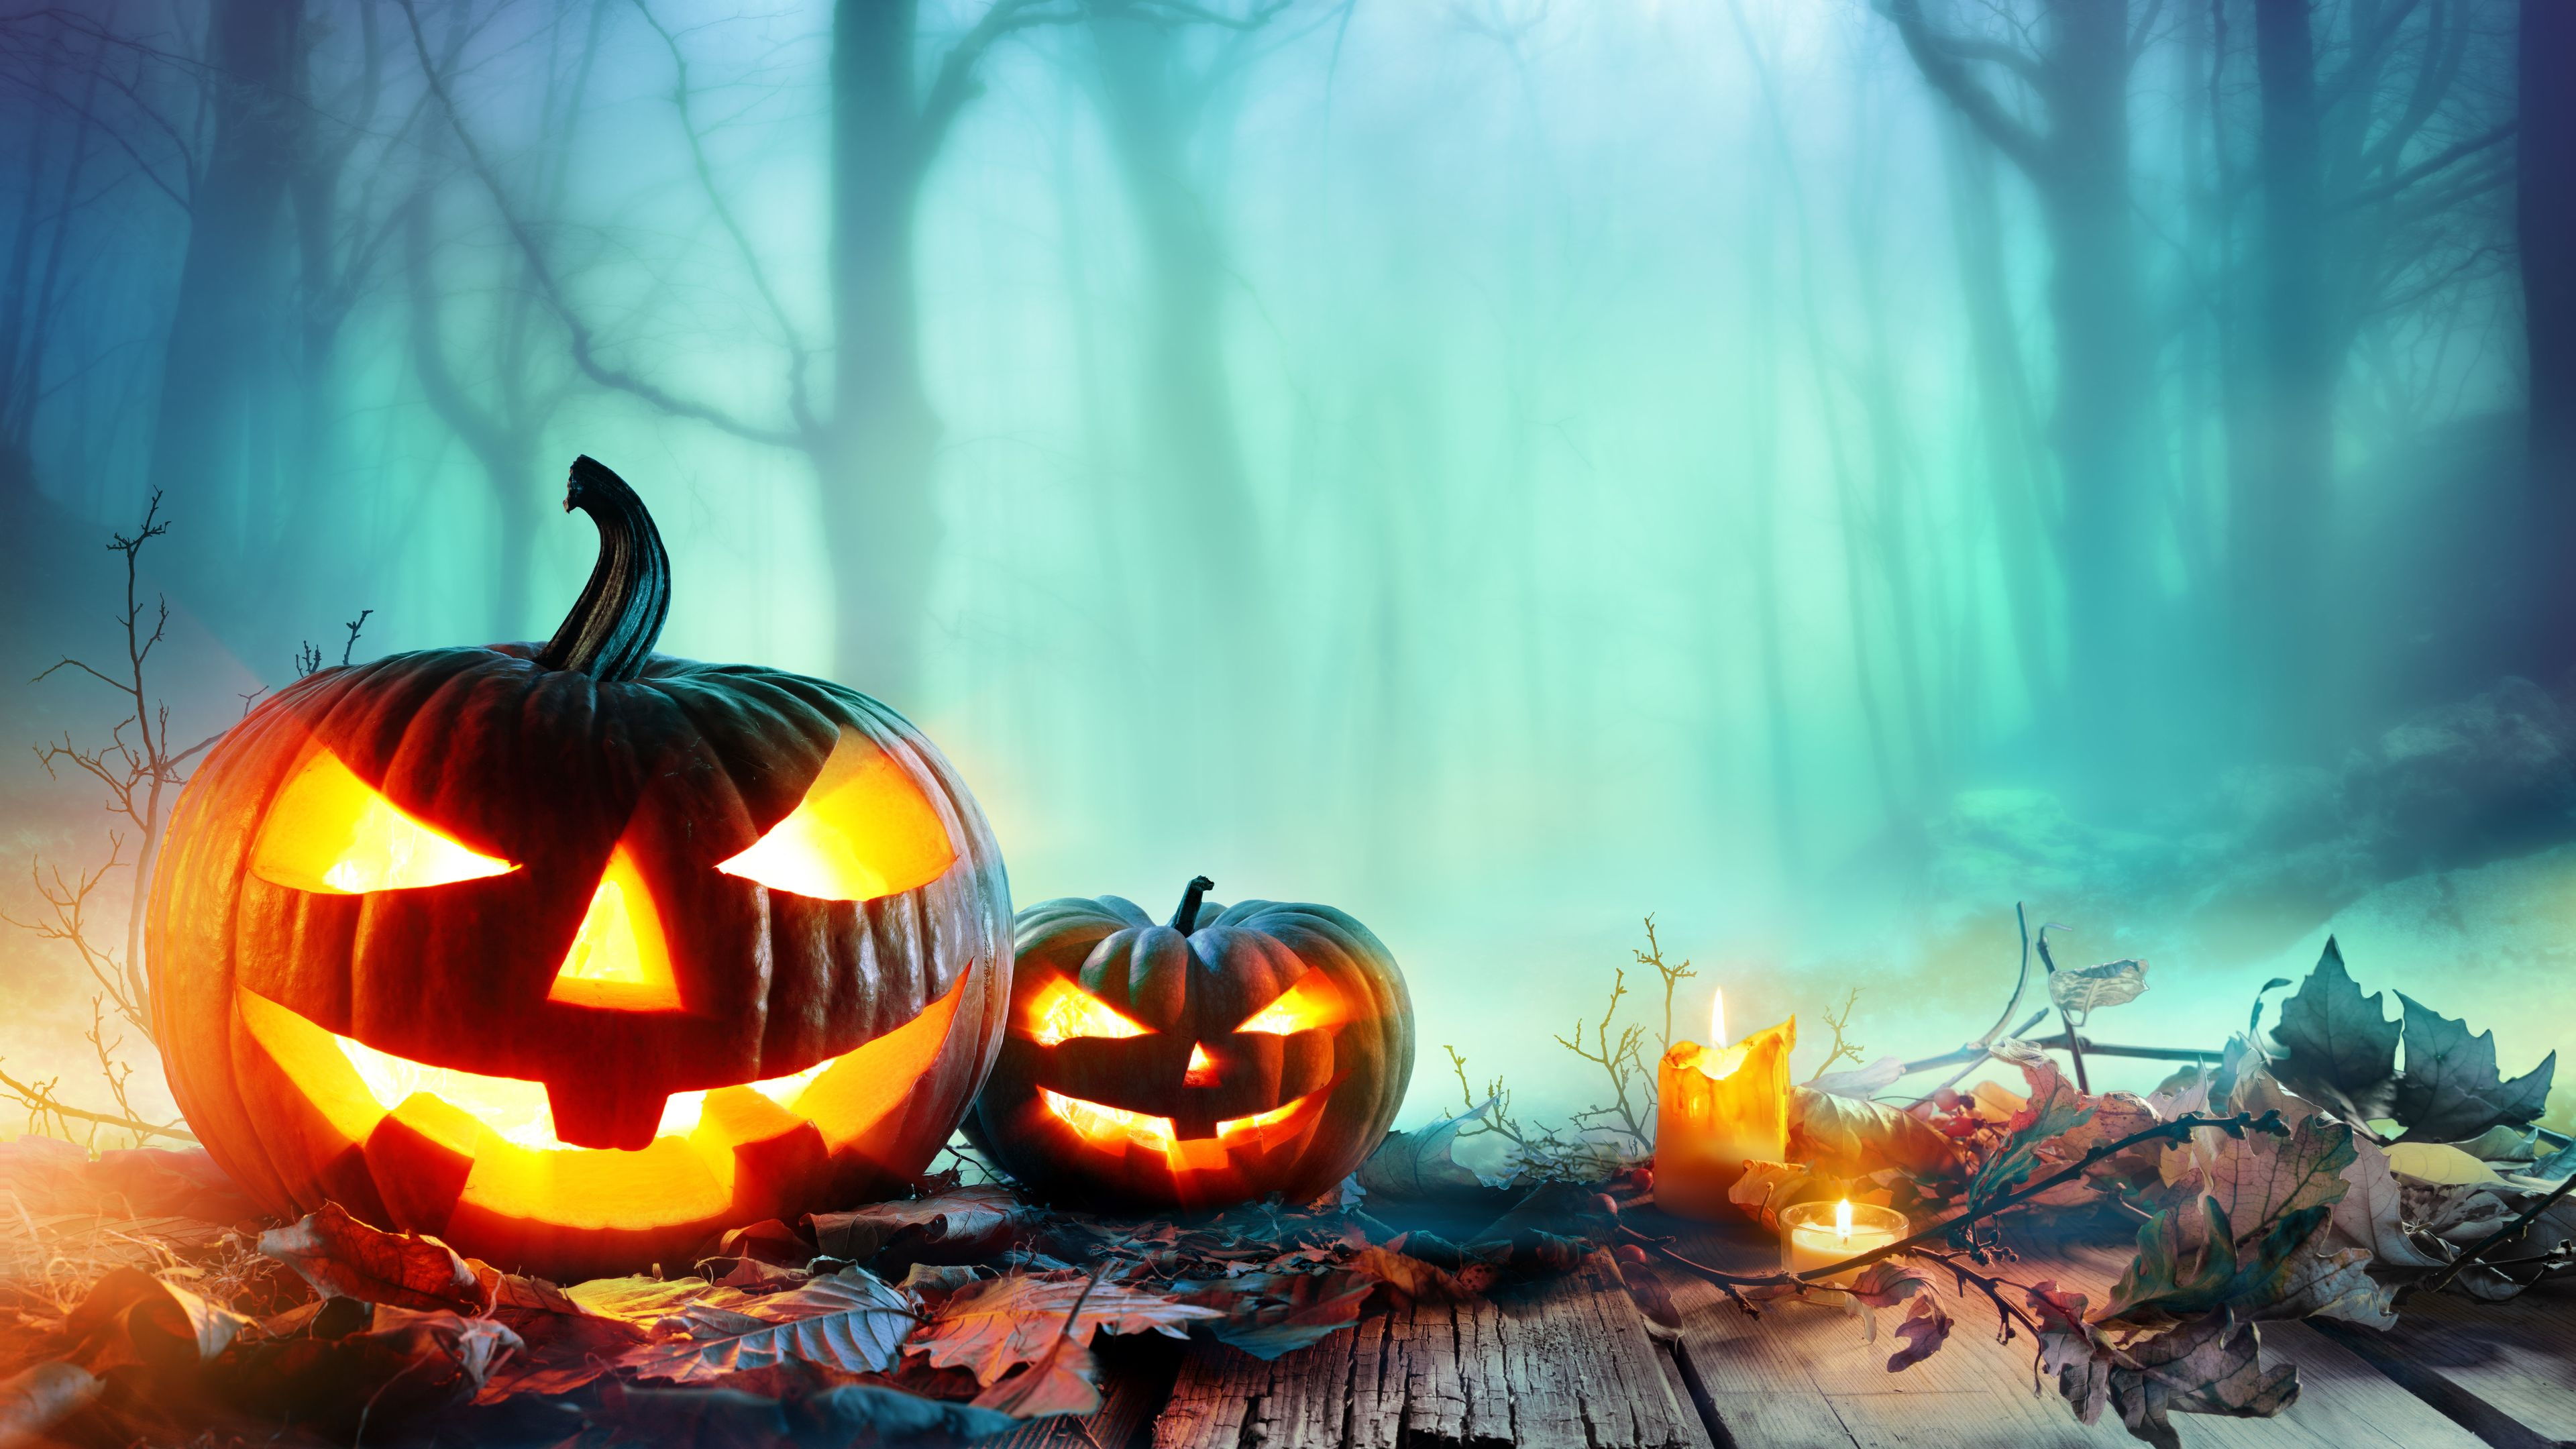 4k new halloween 1543946501 - 4k new Halloween - pumpkin wallpapers, holidays wallpapers, hd-wallpapers, halloween wallpapers, celebrations wallpapers, 8k wallpapers, 5k wallpapers, 4k-wallpapers